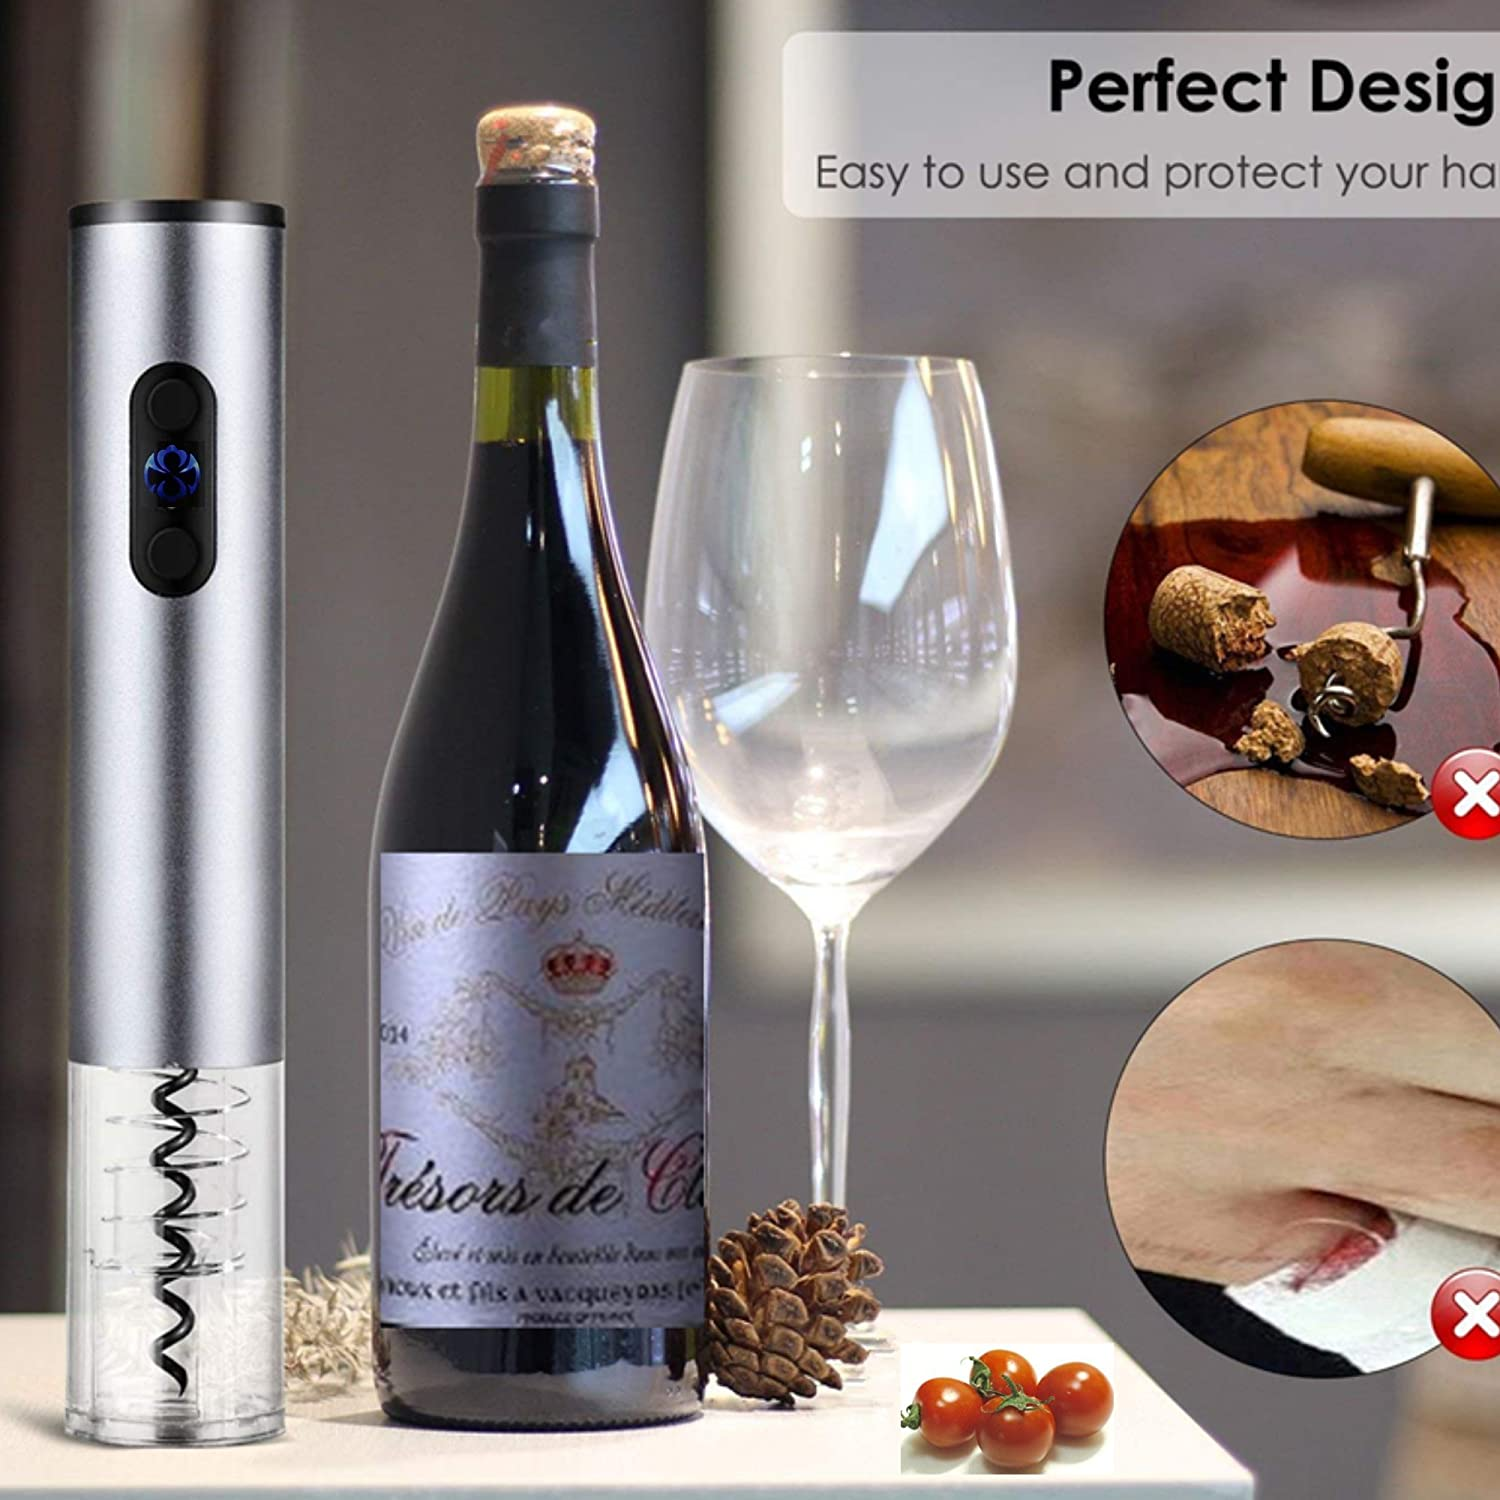 FDG Rechargeable Electric Wine Bottle Opener, Cordless Visible Electric Corkscrew Wine Opener Set with Foil Cutter, Fast Automatic Screwpull Bottle Opener fudiguo